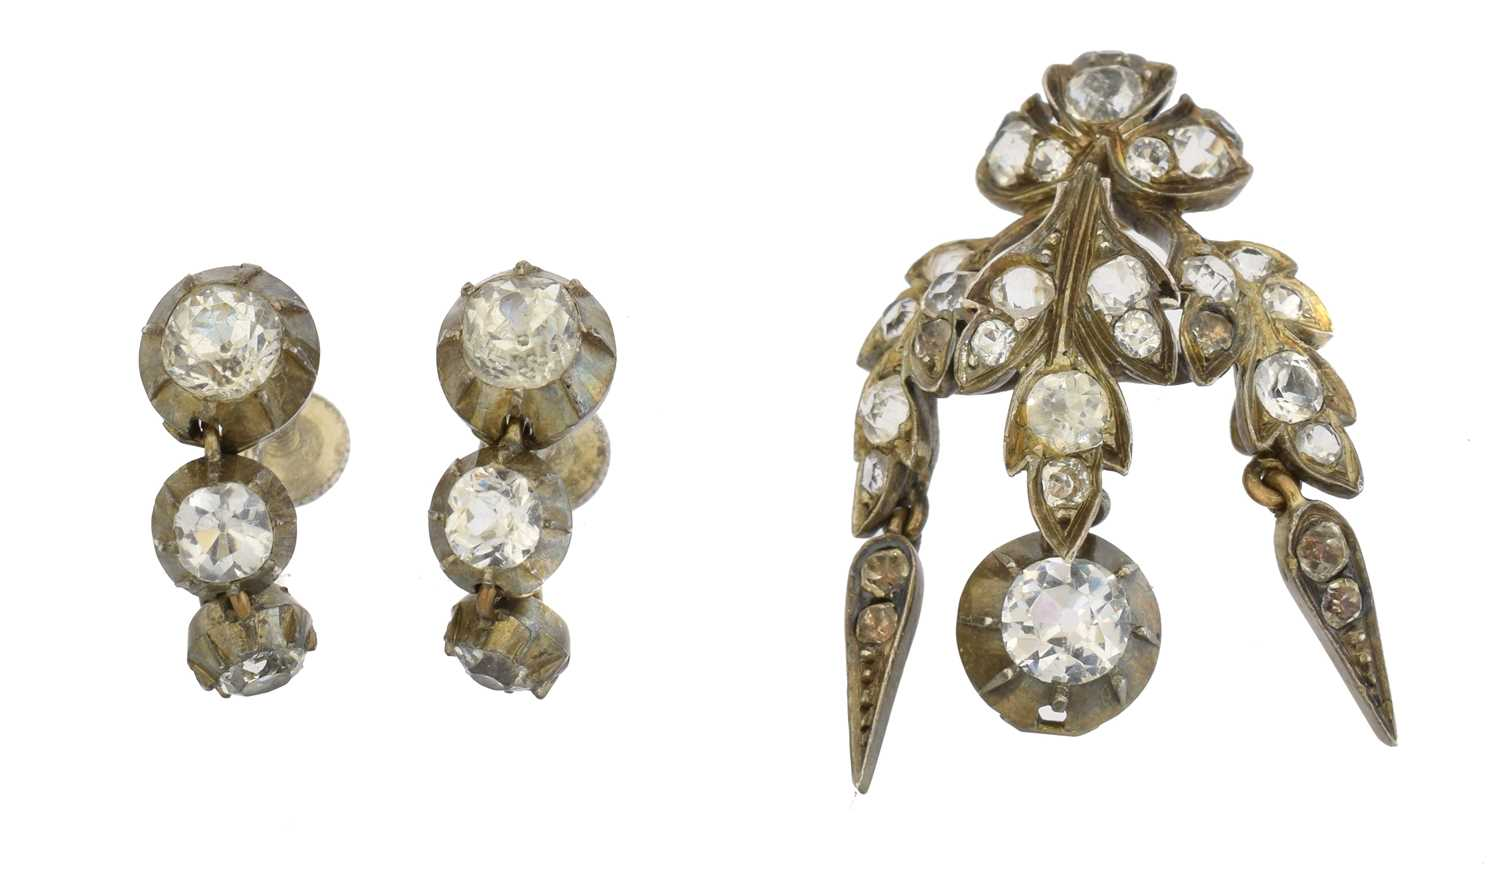 Lot 11 - A selection of paste jewellery